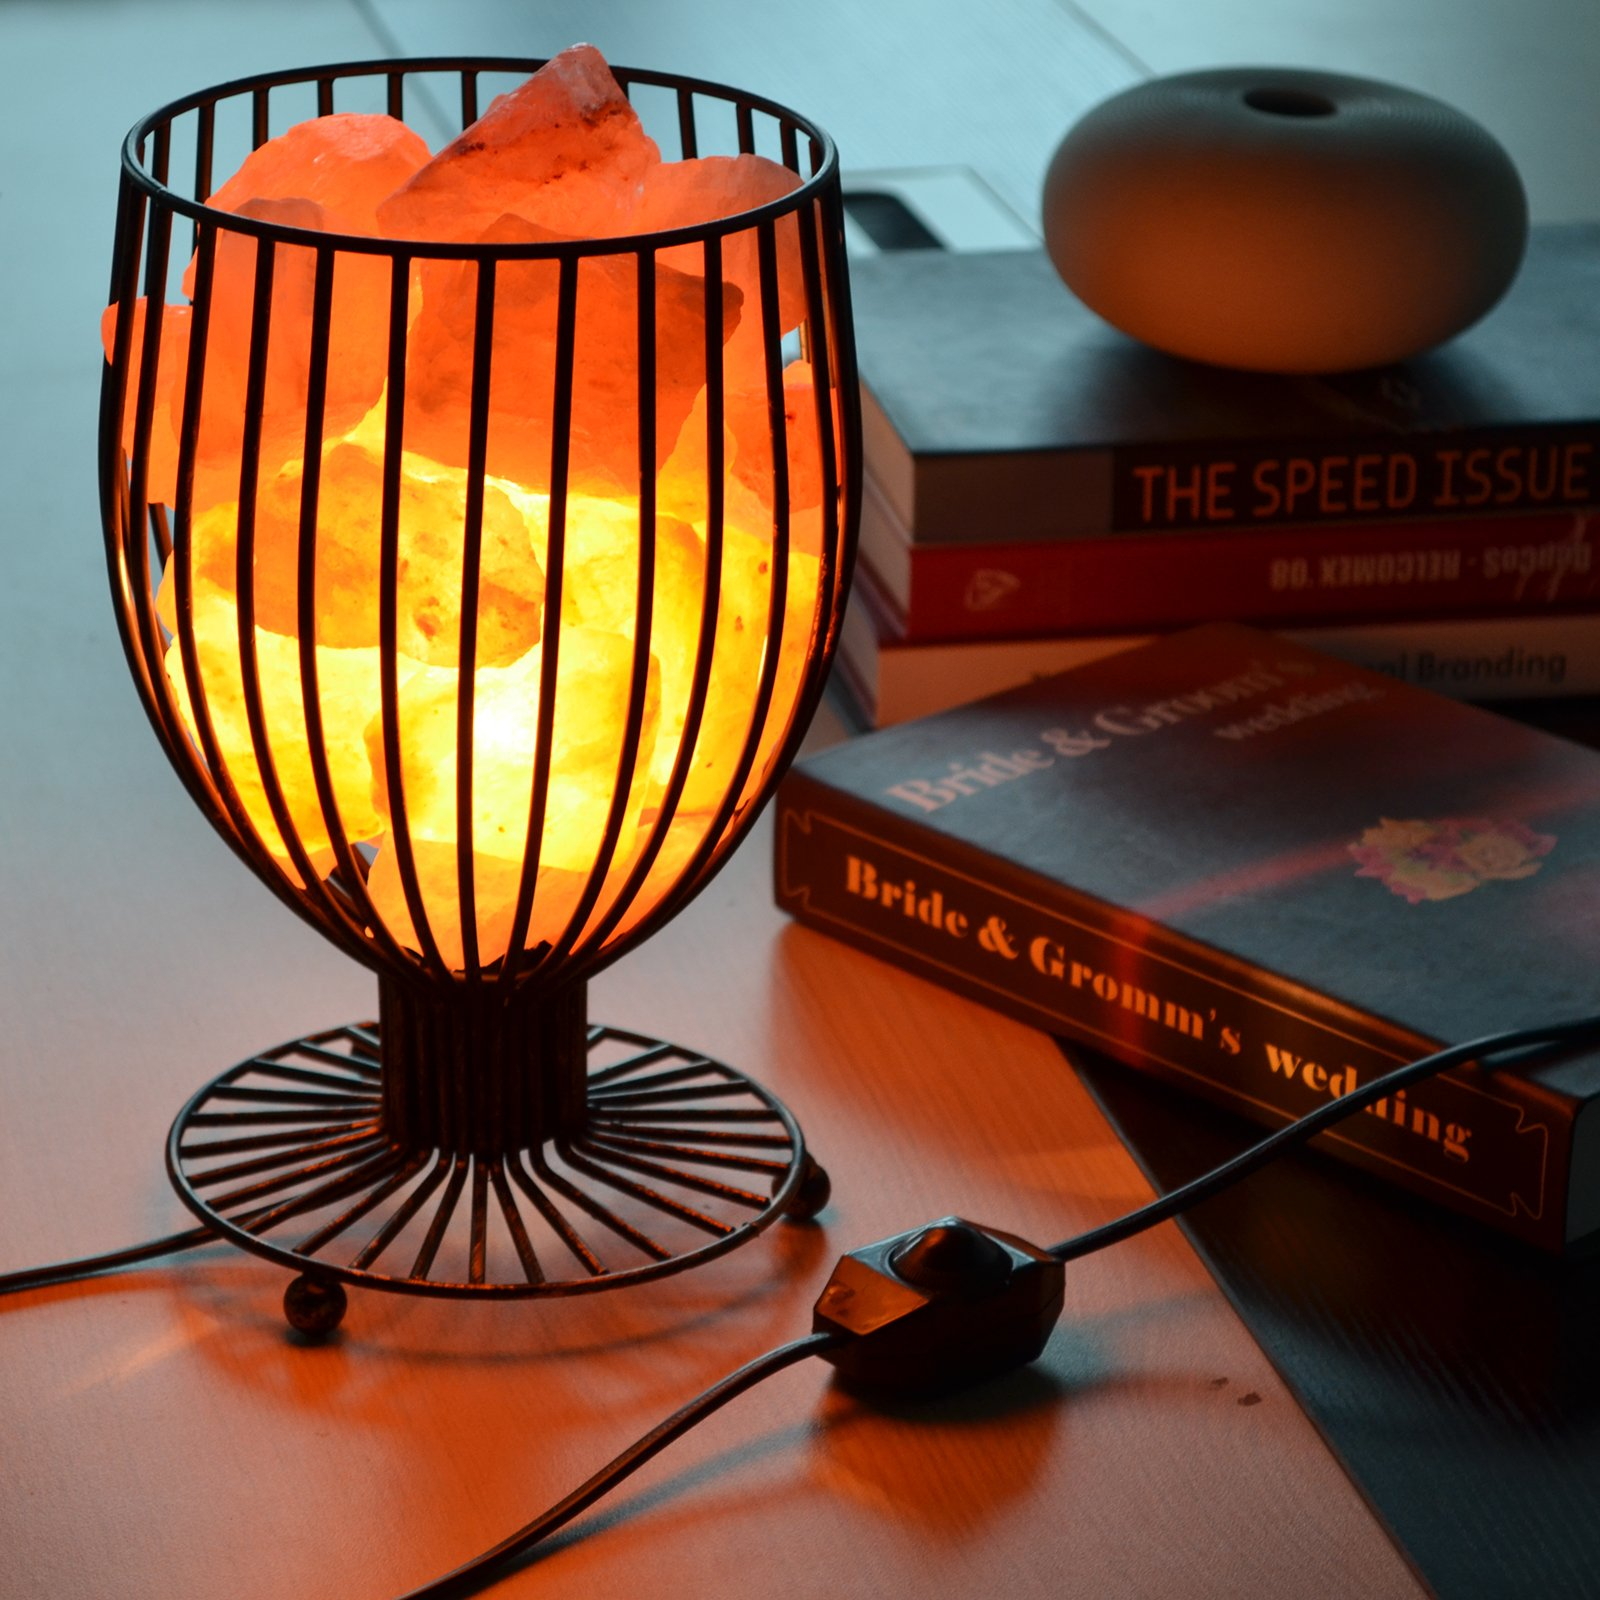 Maymii.Home 9.5'' Wine Glass Design Himalayan Salt Crystal Table Desk Lamp Light Lights with Salt Chunks in Heavy Duty Metal Basket Dimmer Switch, Bulb Include for Bedroom,Living Room Kitchen